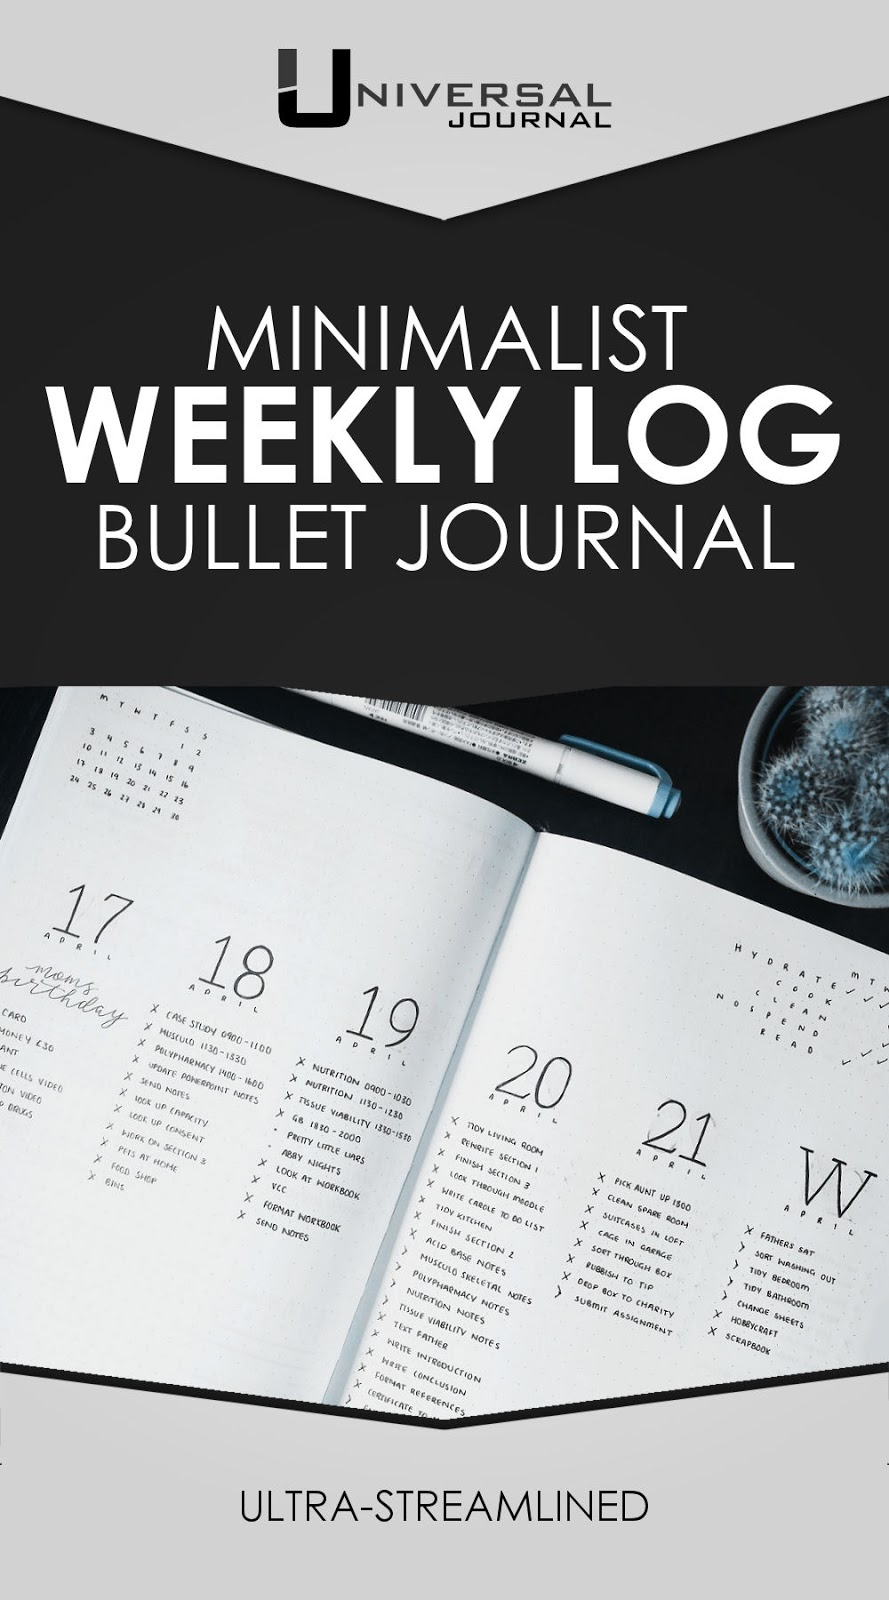 bullet journal streamlined weekly log minimalist